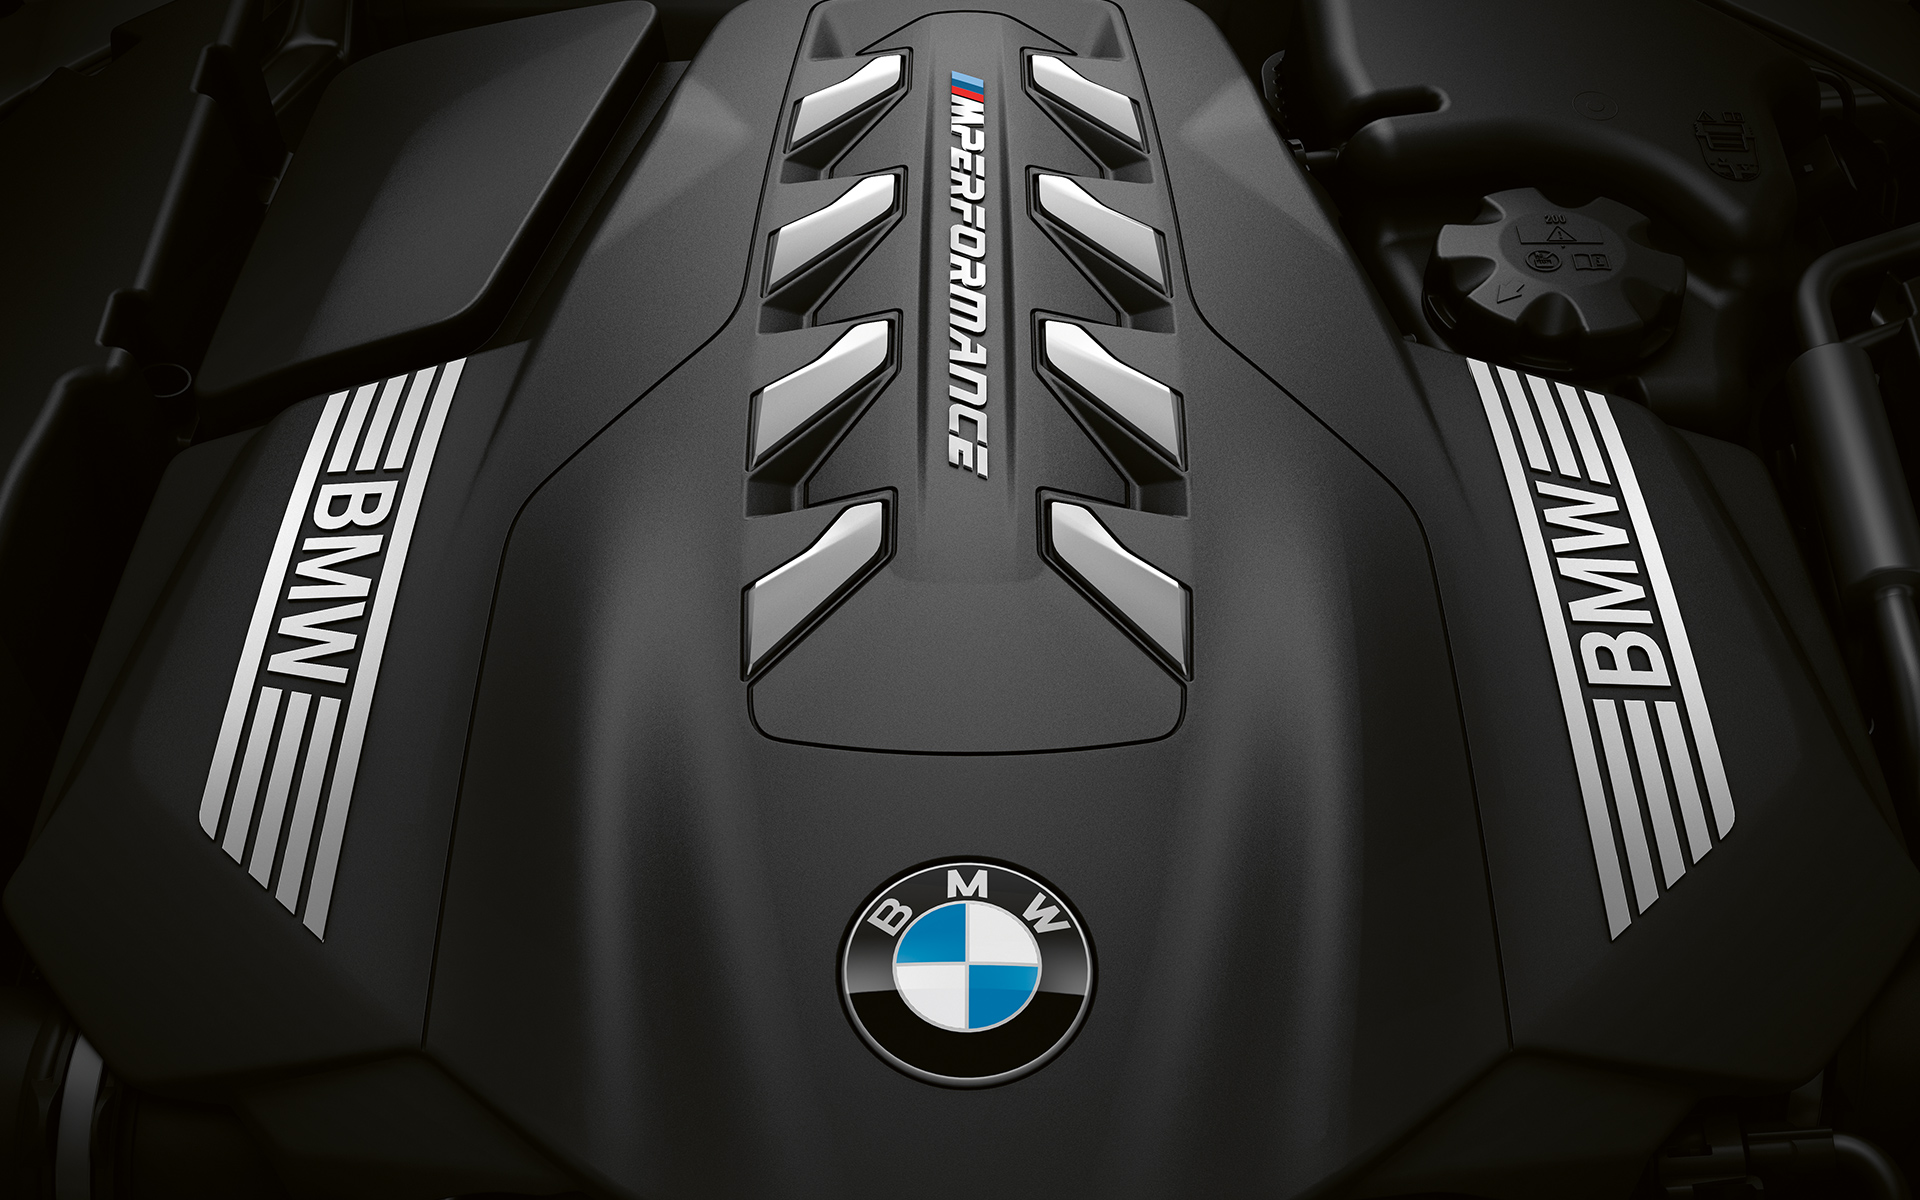 bmw 8series coupe m performance gallery wallpaper 01.jpg.asset .1527669847240